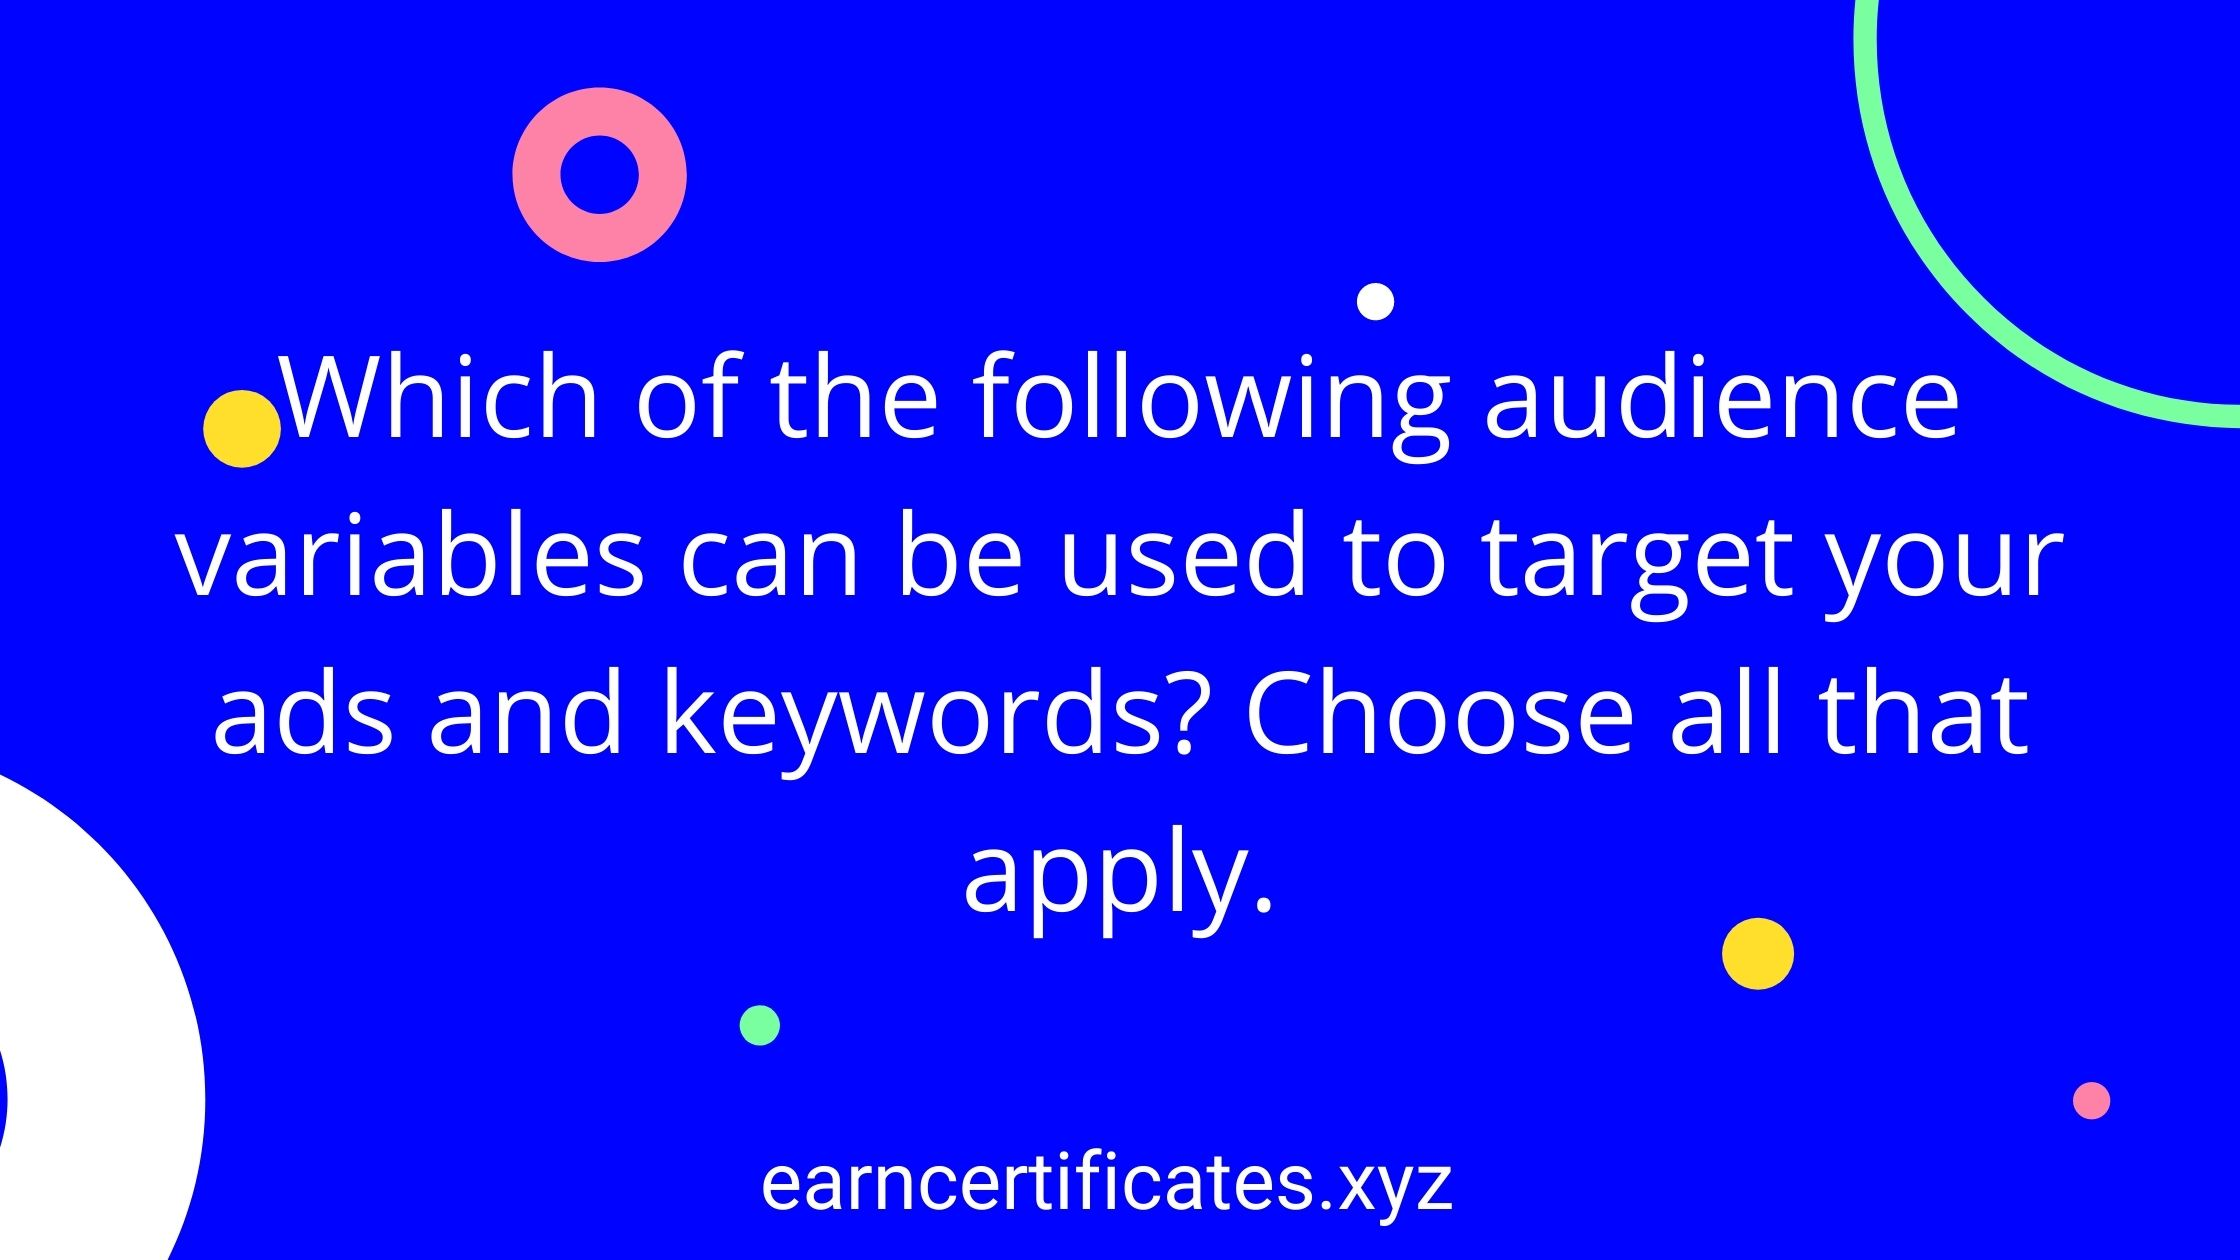 Which of the following audience variables can be used to target your ads and keywords? Choose all that apply.